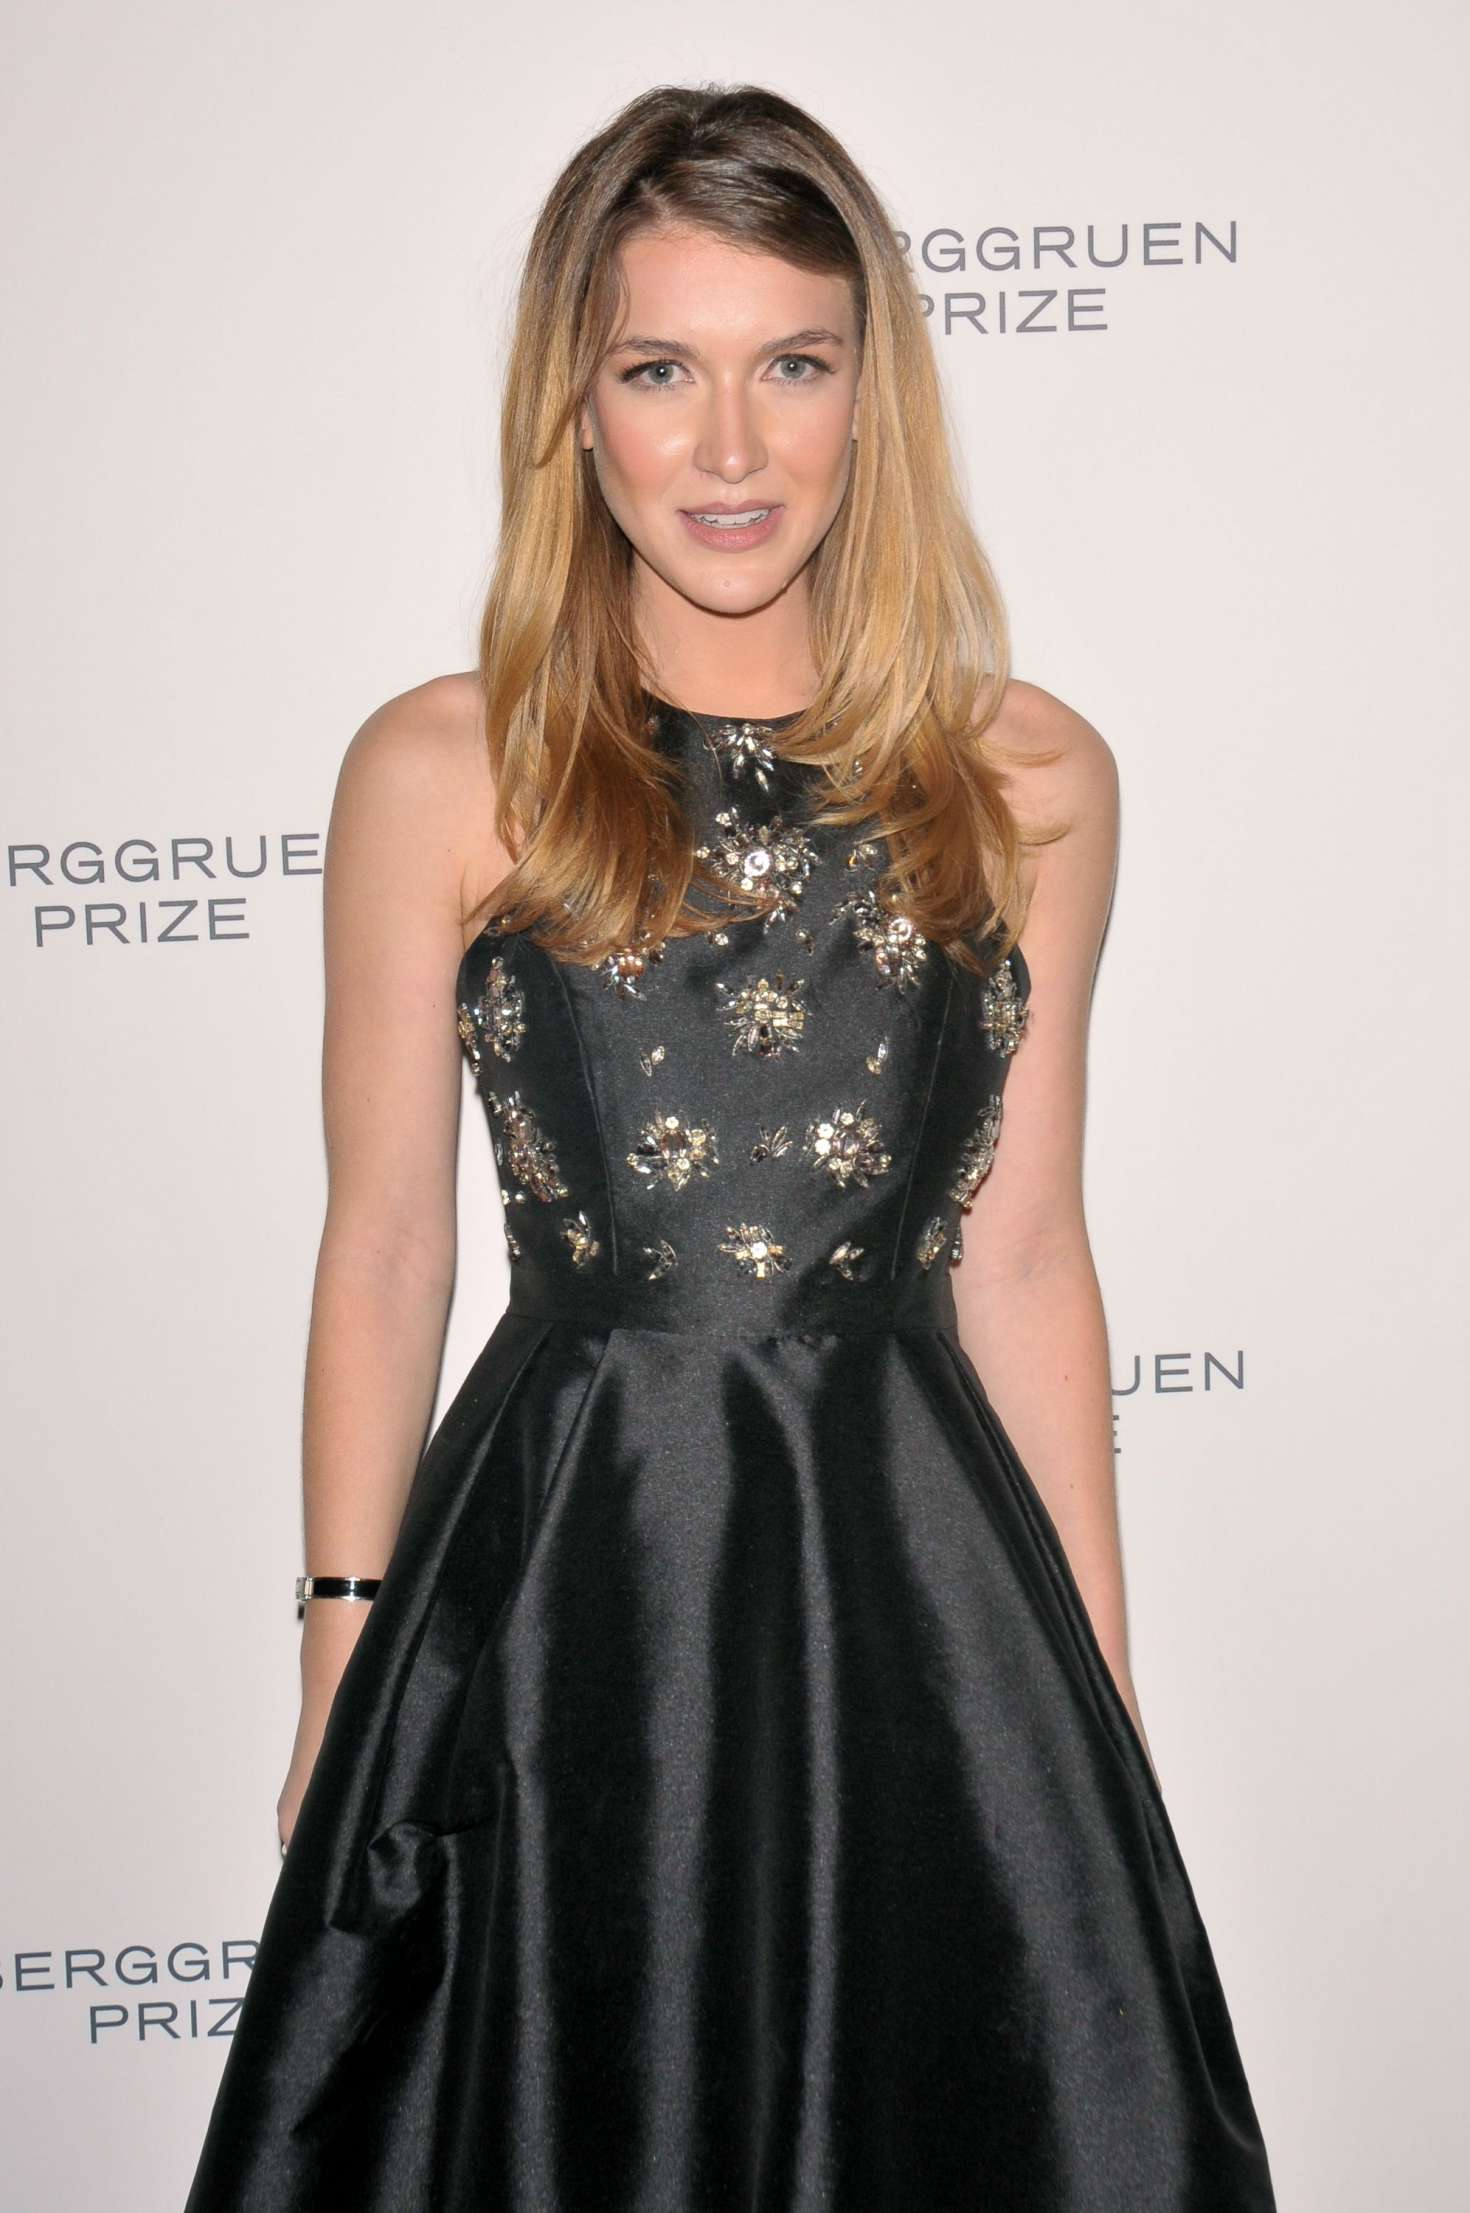 Nathalia Ramos - The Berggruen Prize Award Ceremony in New York